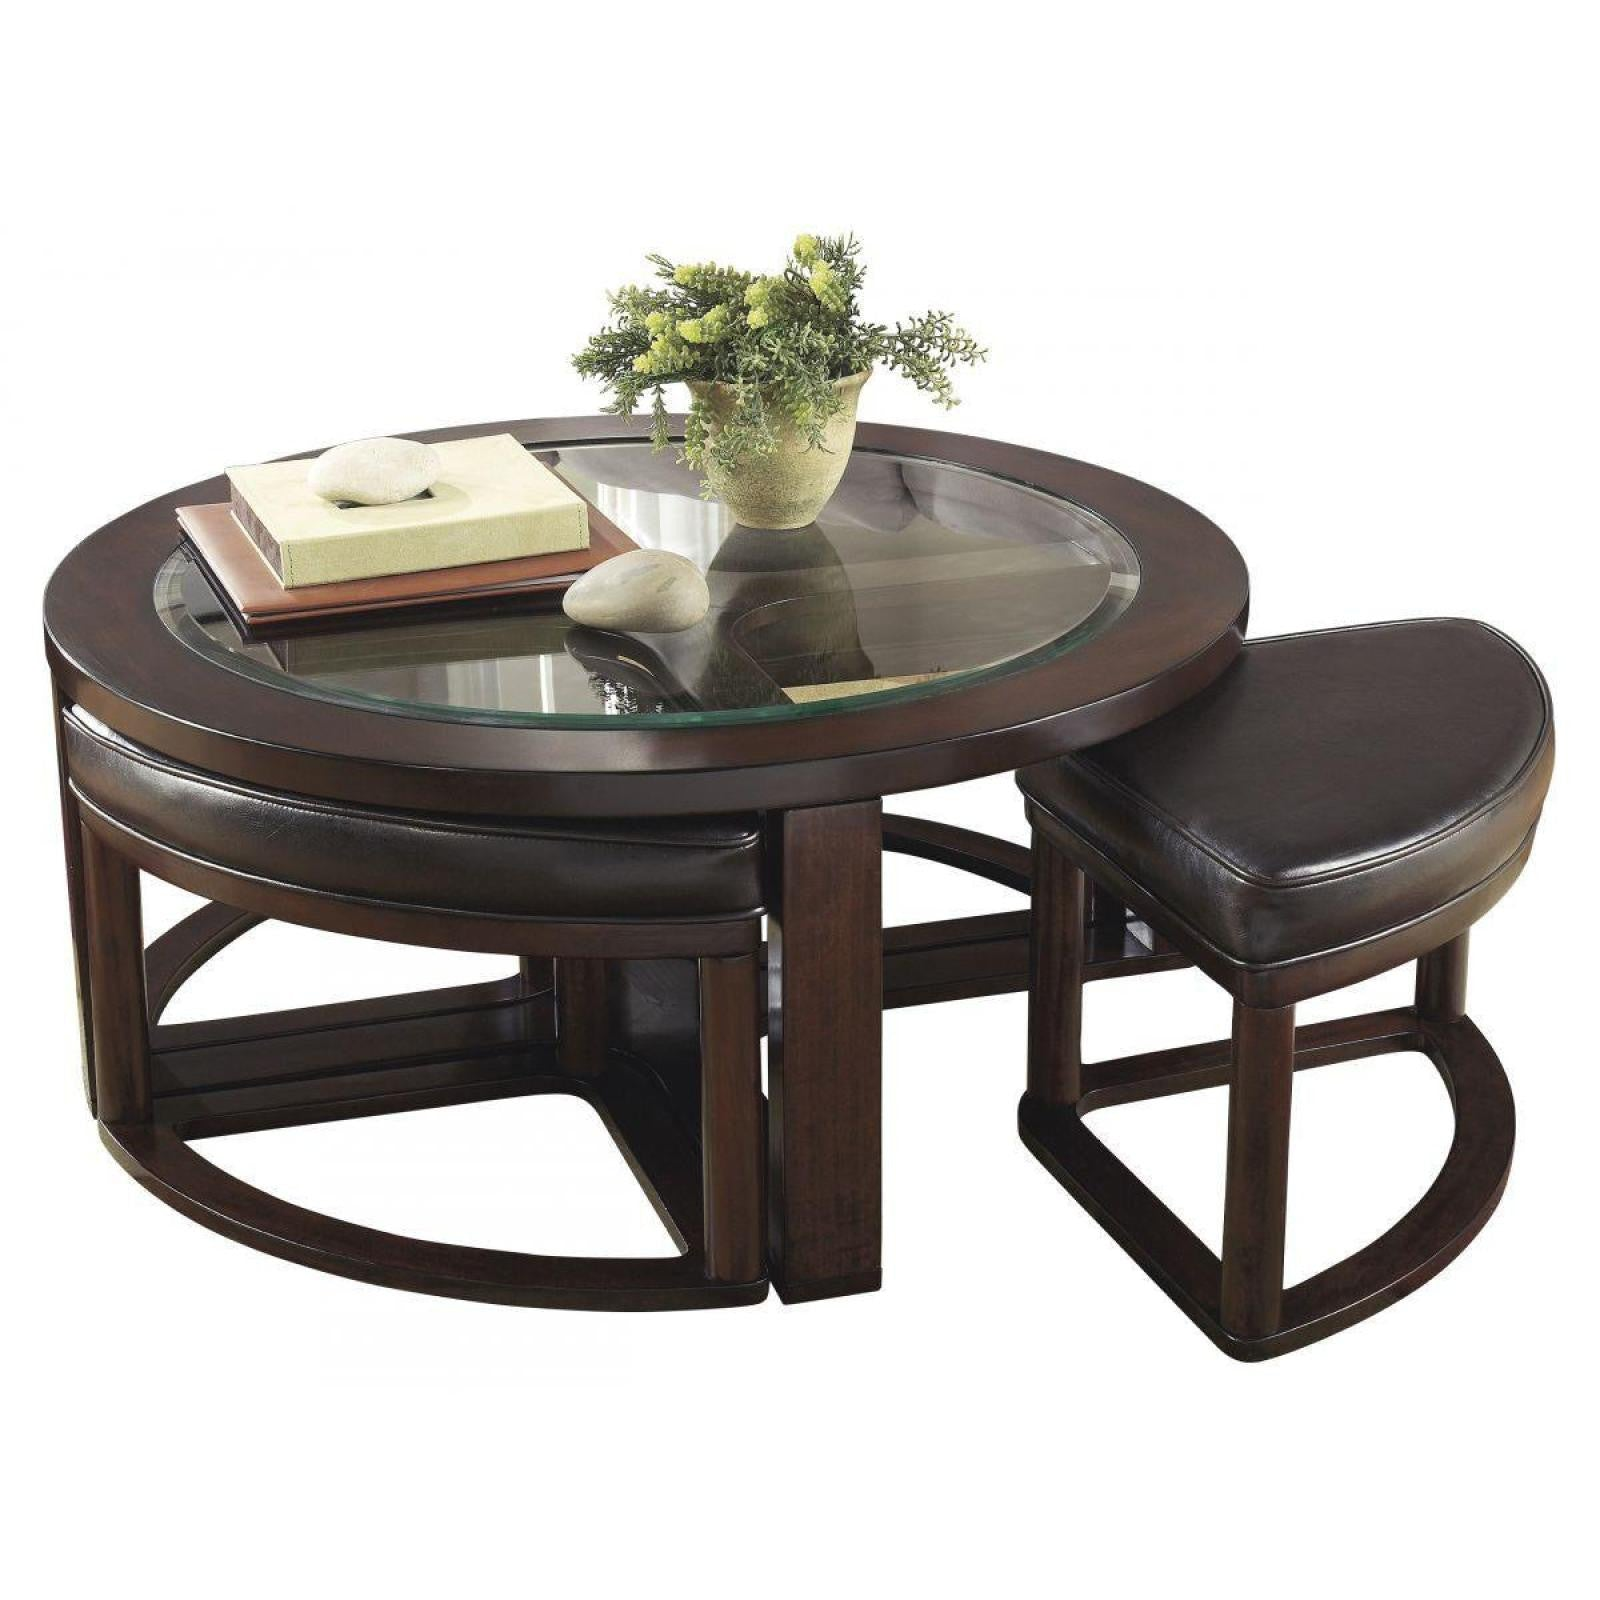 Superior Marion | Round Coffee Table With 4 Stools, OCCASIONAL TABLES   Adams  Furniture ...